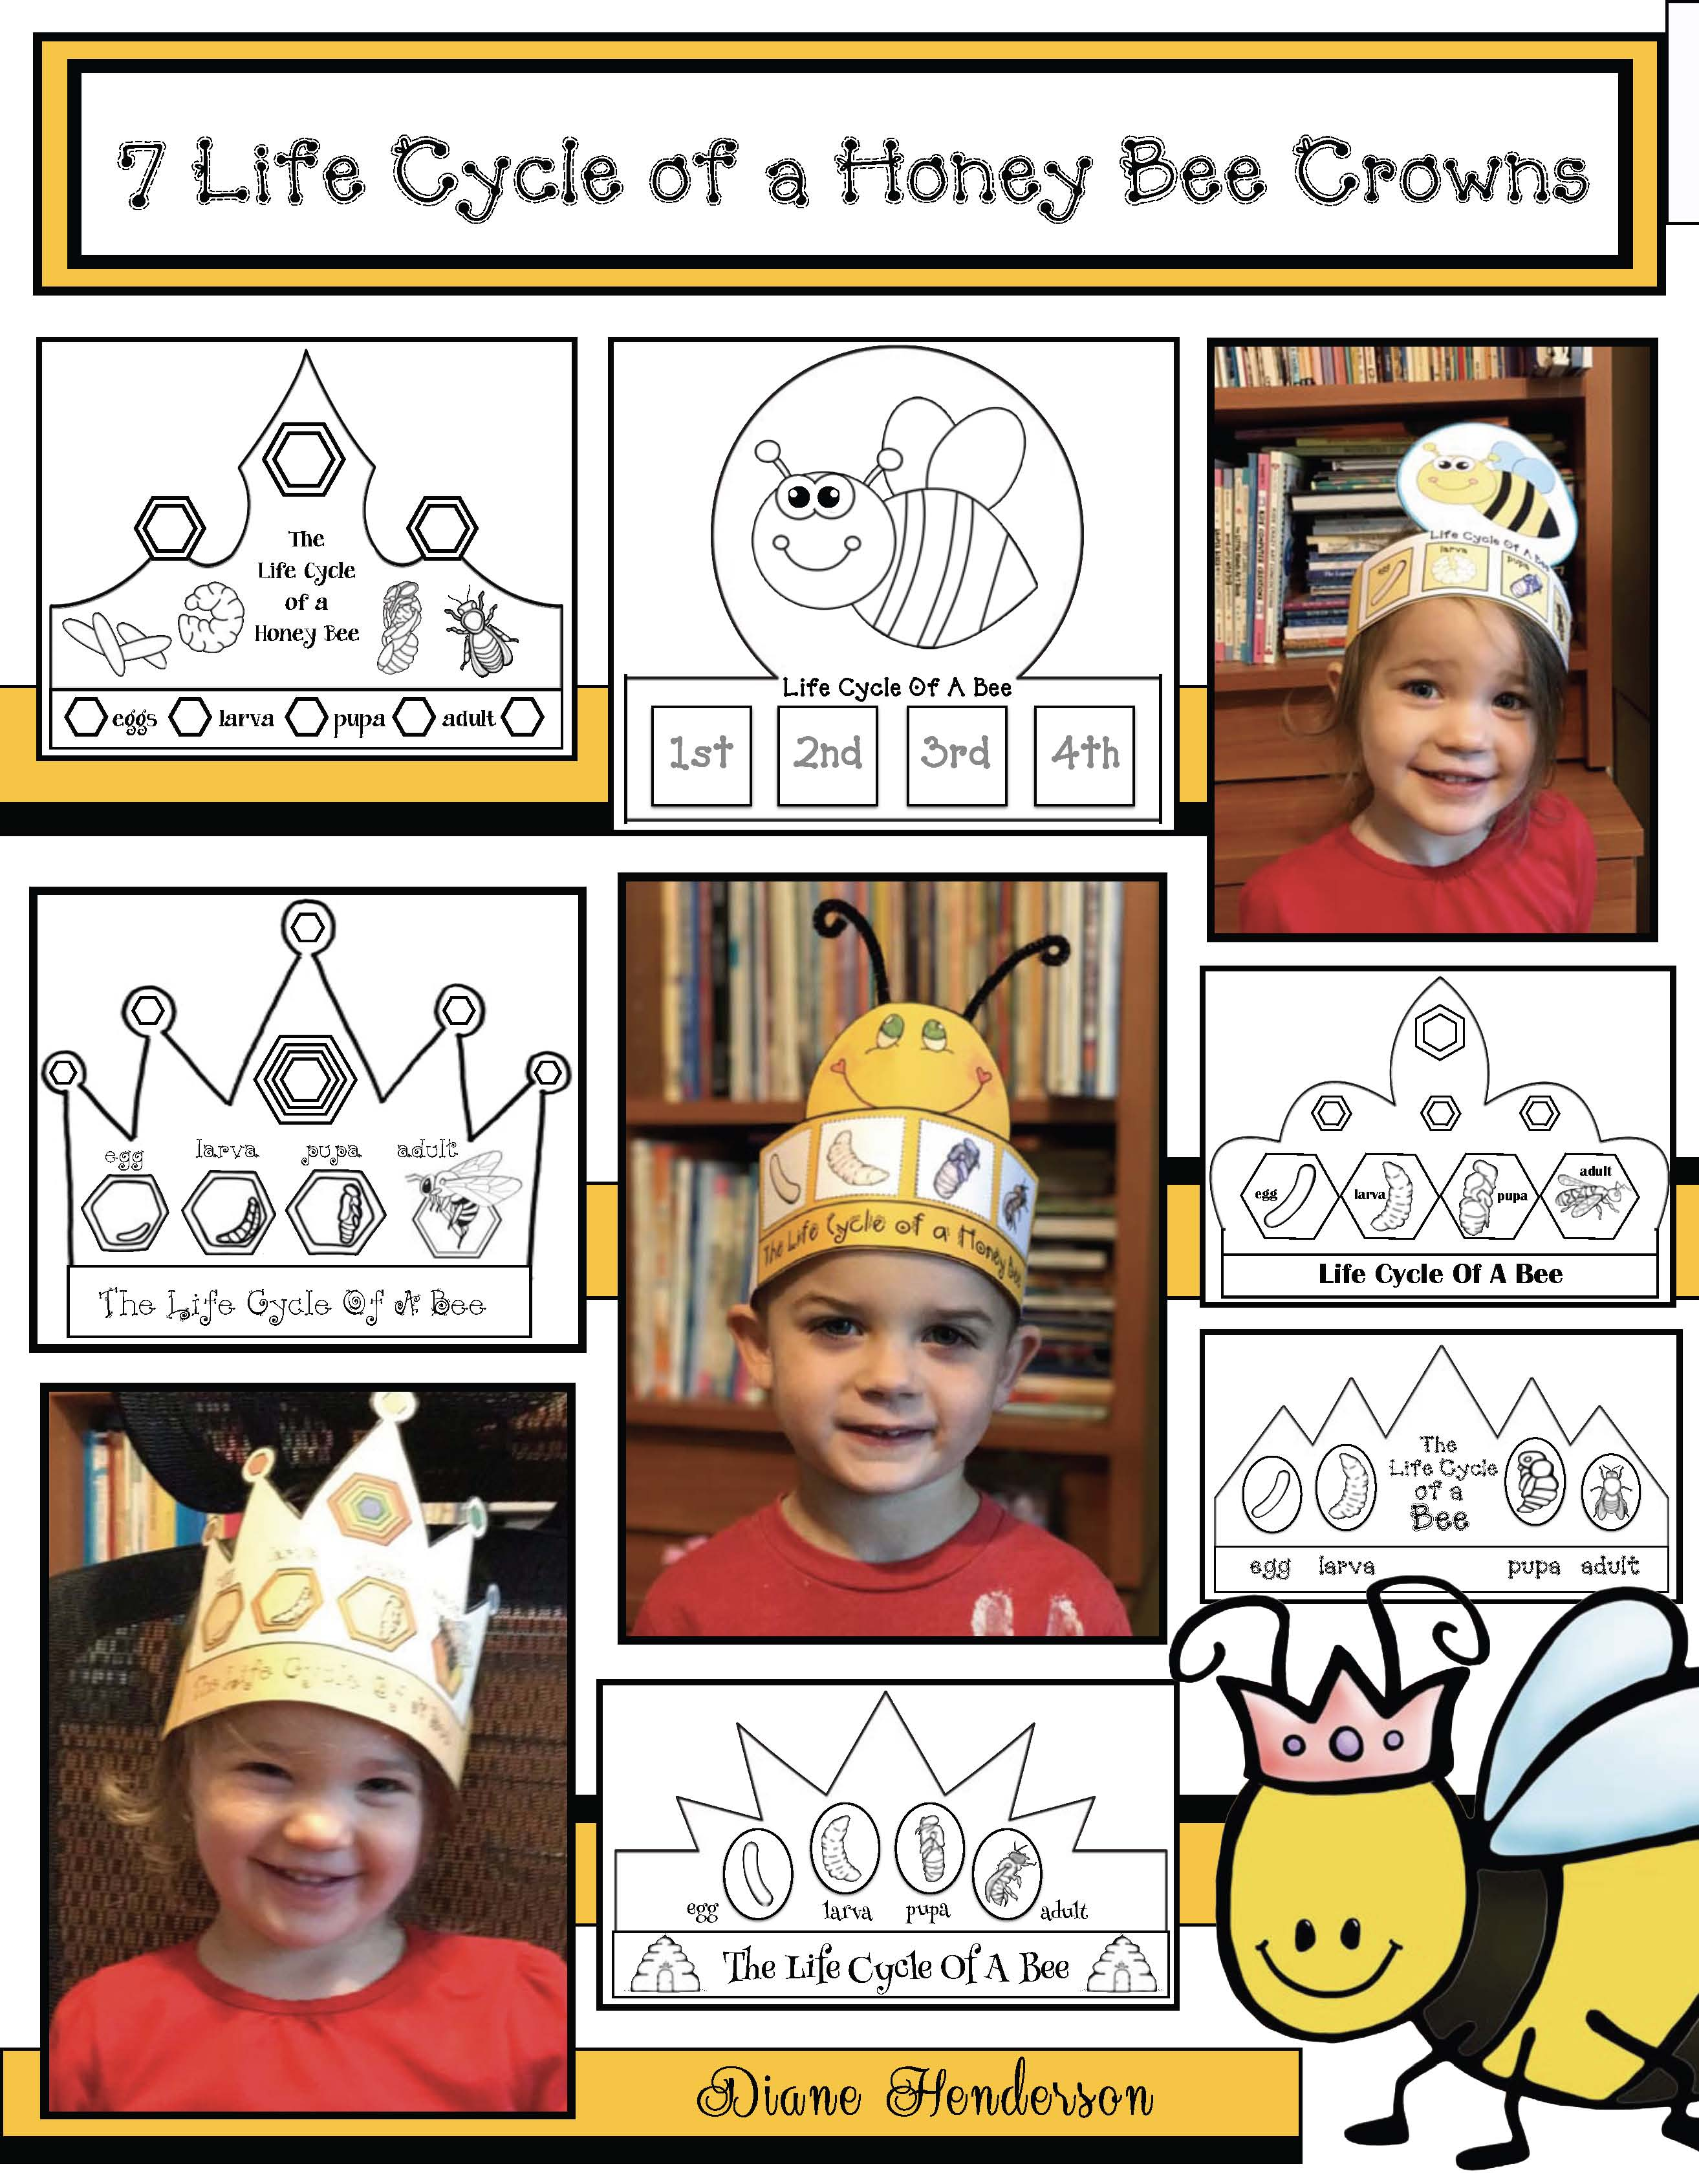 bee crowns, crown crafts for kids, beekeeping, bee crafts, honey bee crafts, honeybee activities, beehive craft, life cycle of a bee activities